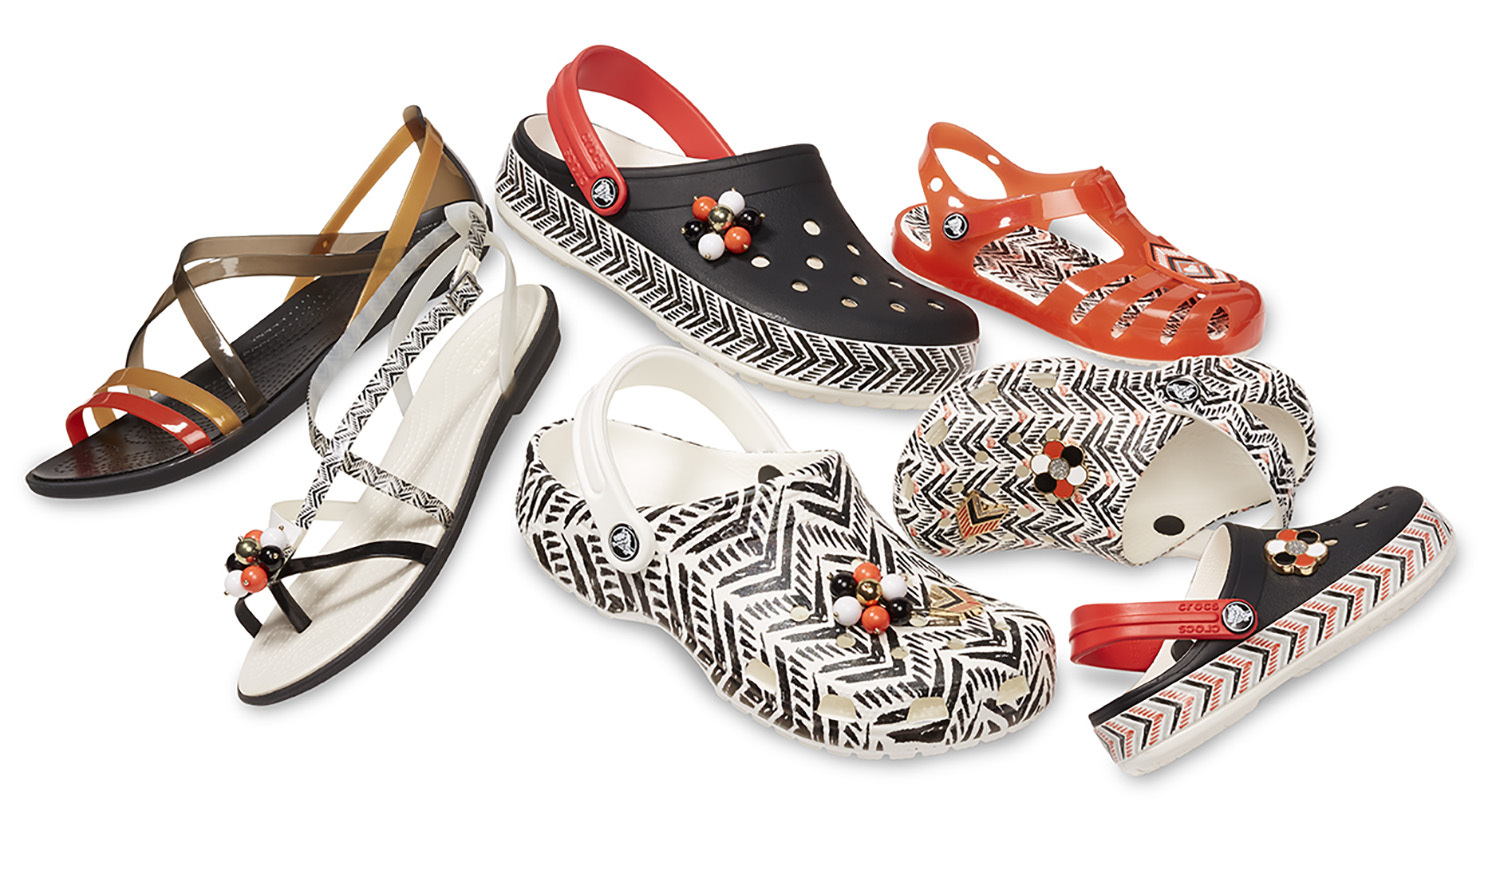 7658a469233d76 Crocs Unveils Its Drew Barrymore ♥ Crocs Chevron Collection ...